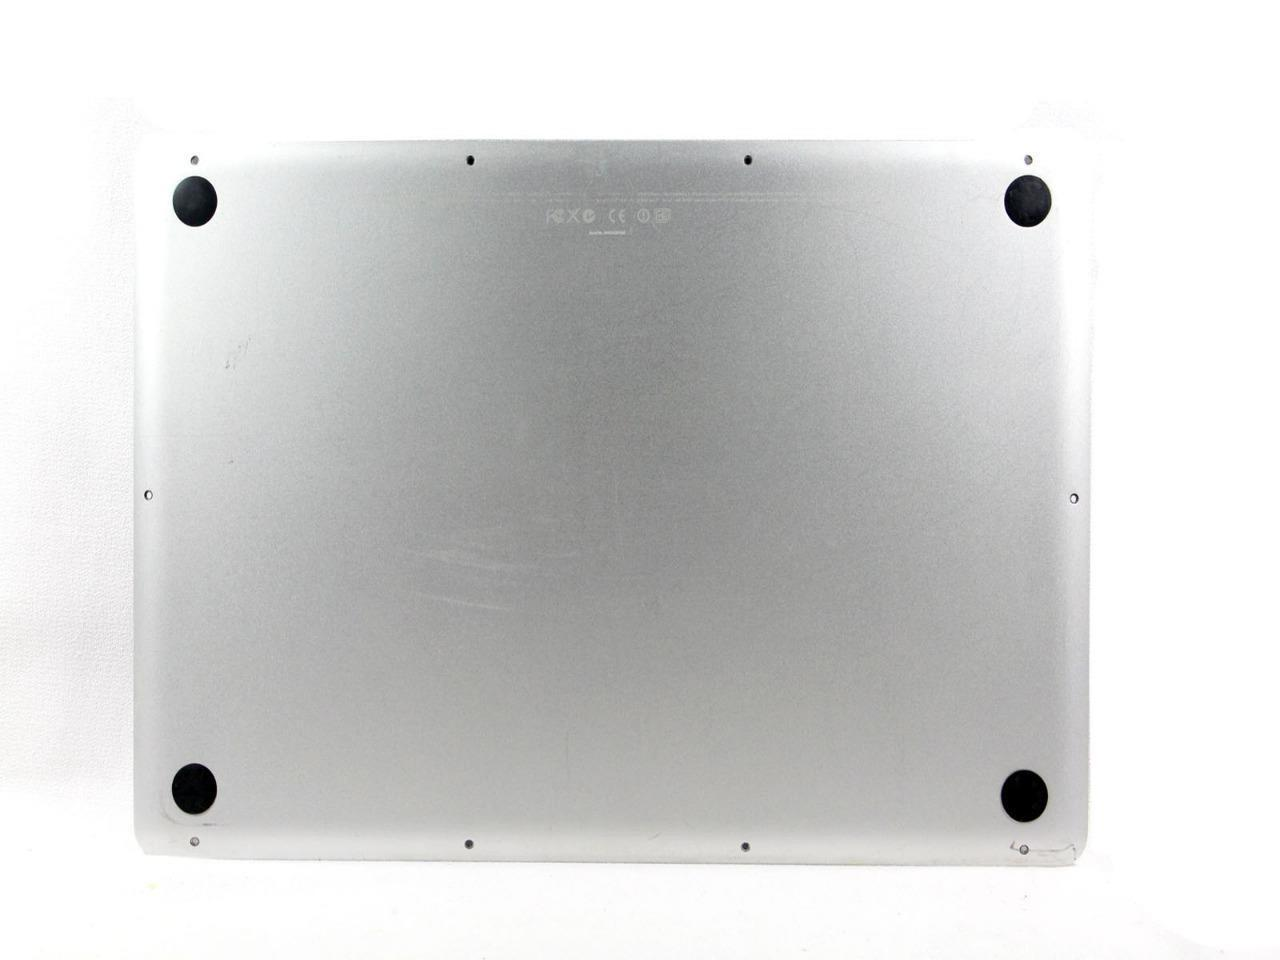 the latest 188c7 0971b Bottom Case for Apple MacBook Pro 15 inch A1286 Mid 2009, A1286 Mid 2010,  A1286 Early 2011, A1286 Late 2011, A1286 Mid 2012